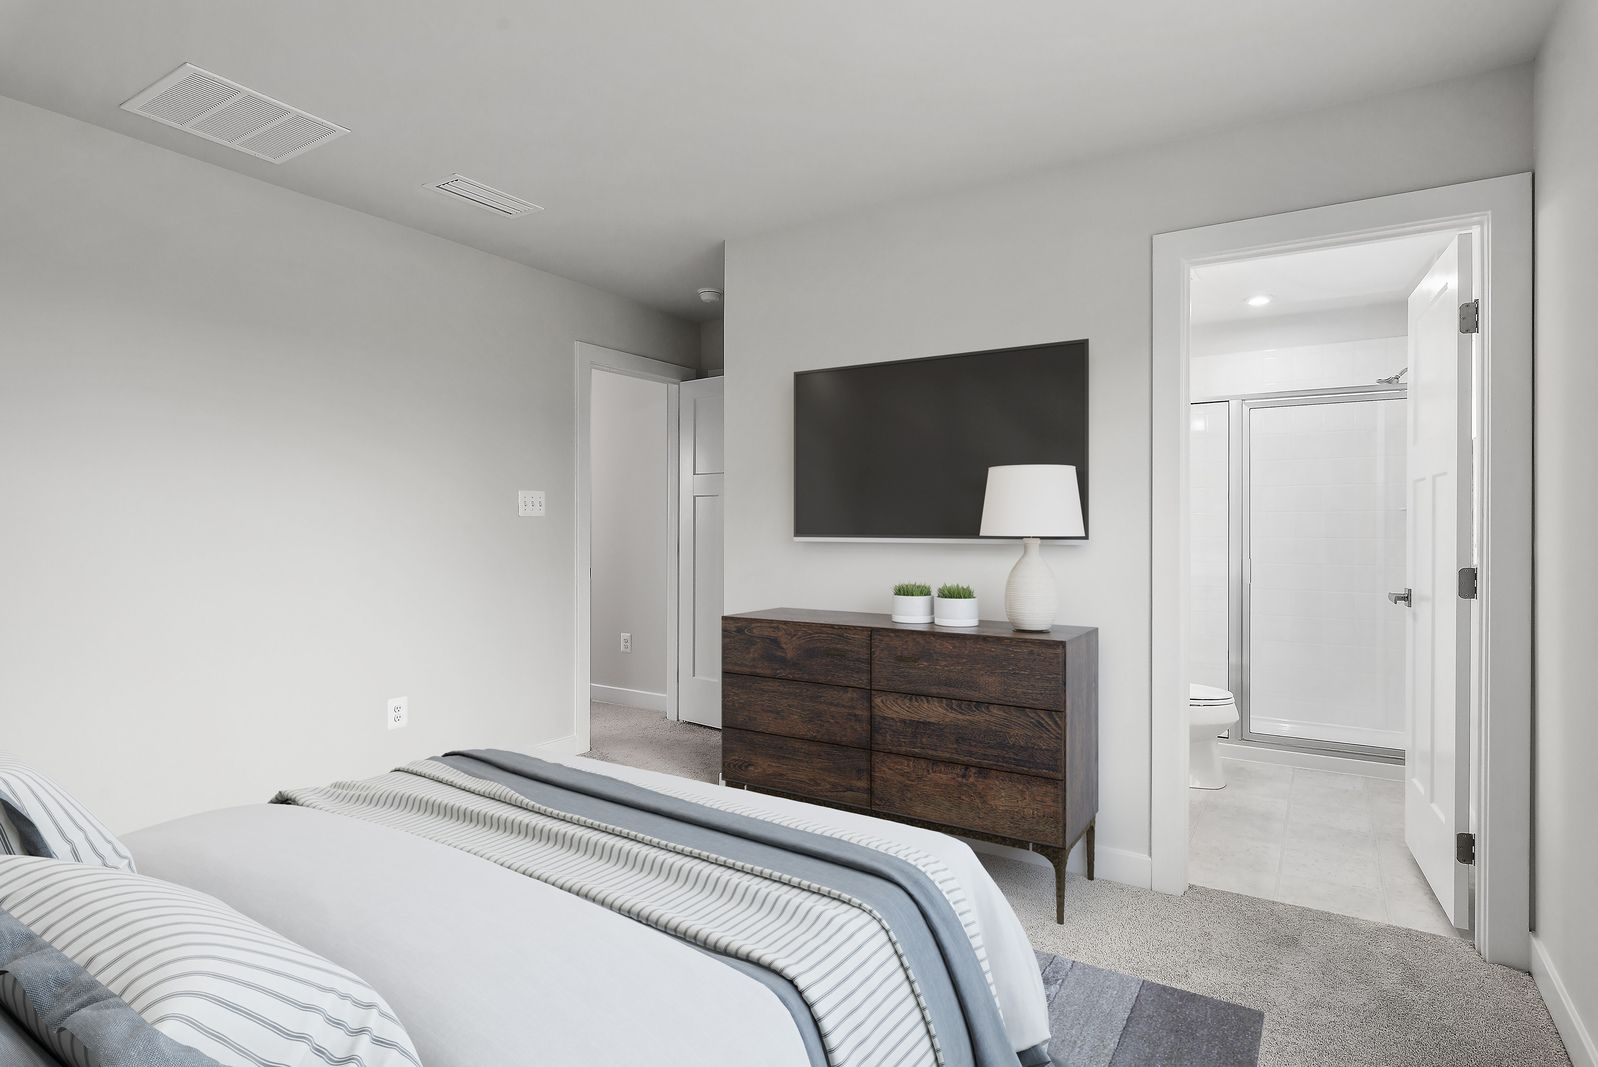 Bedroom featured in the Adrian w/ Basement By Ryan Homes in Charlottesville, VA